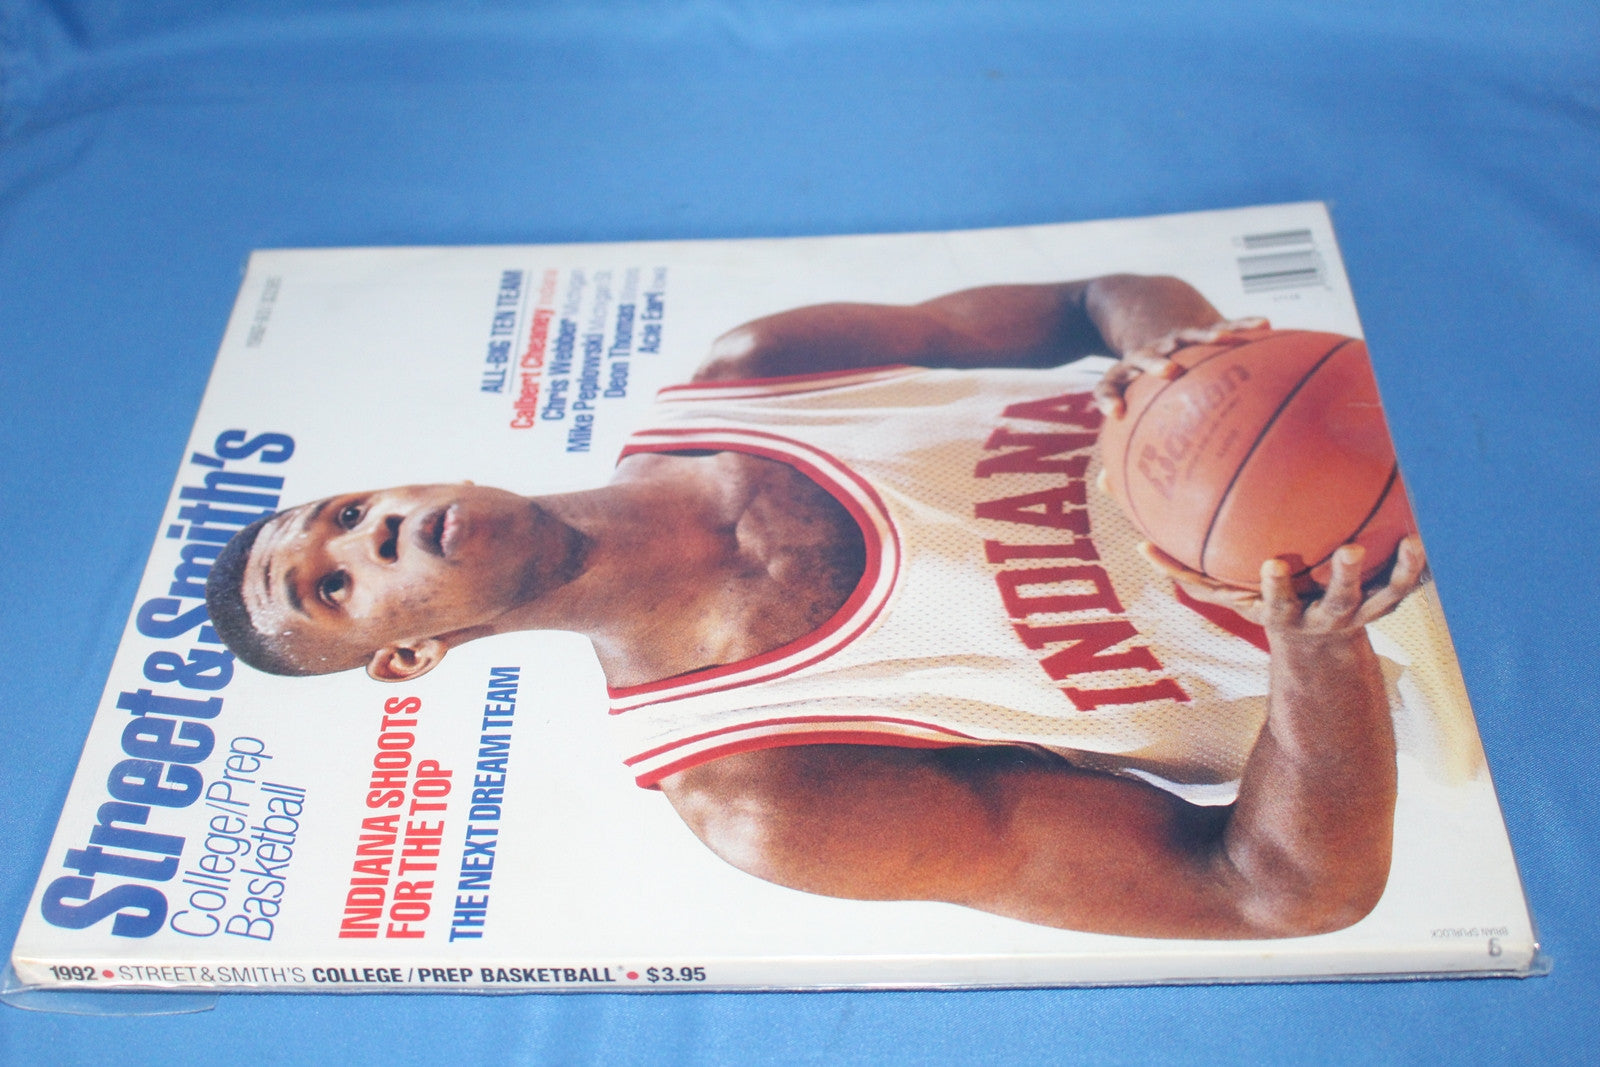 1992 Street & Smith Basketball Yearbook, Calbert Cheaney on cover - Vintage Indy Sports